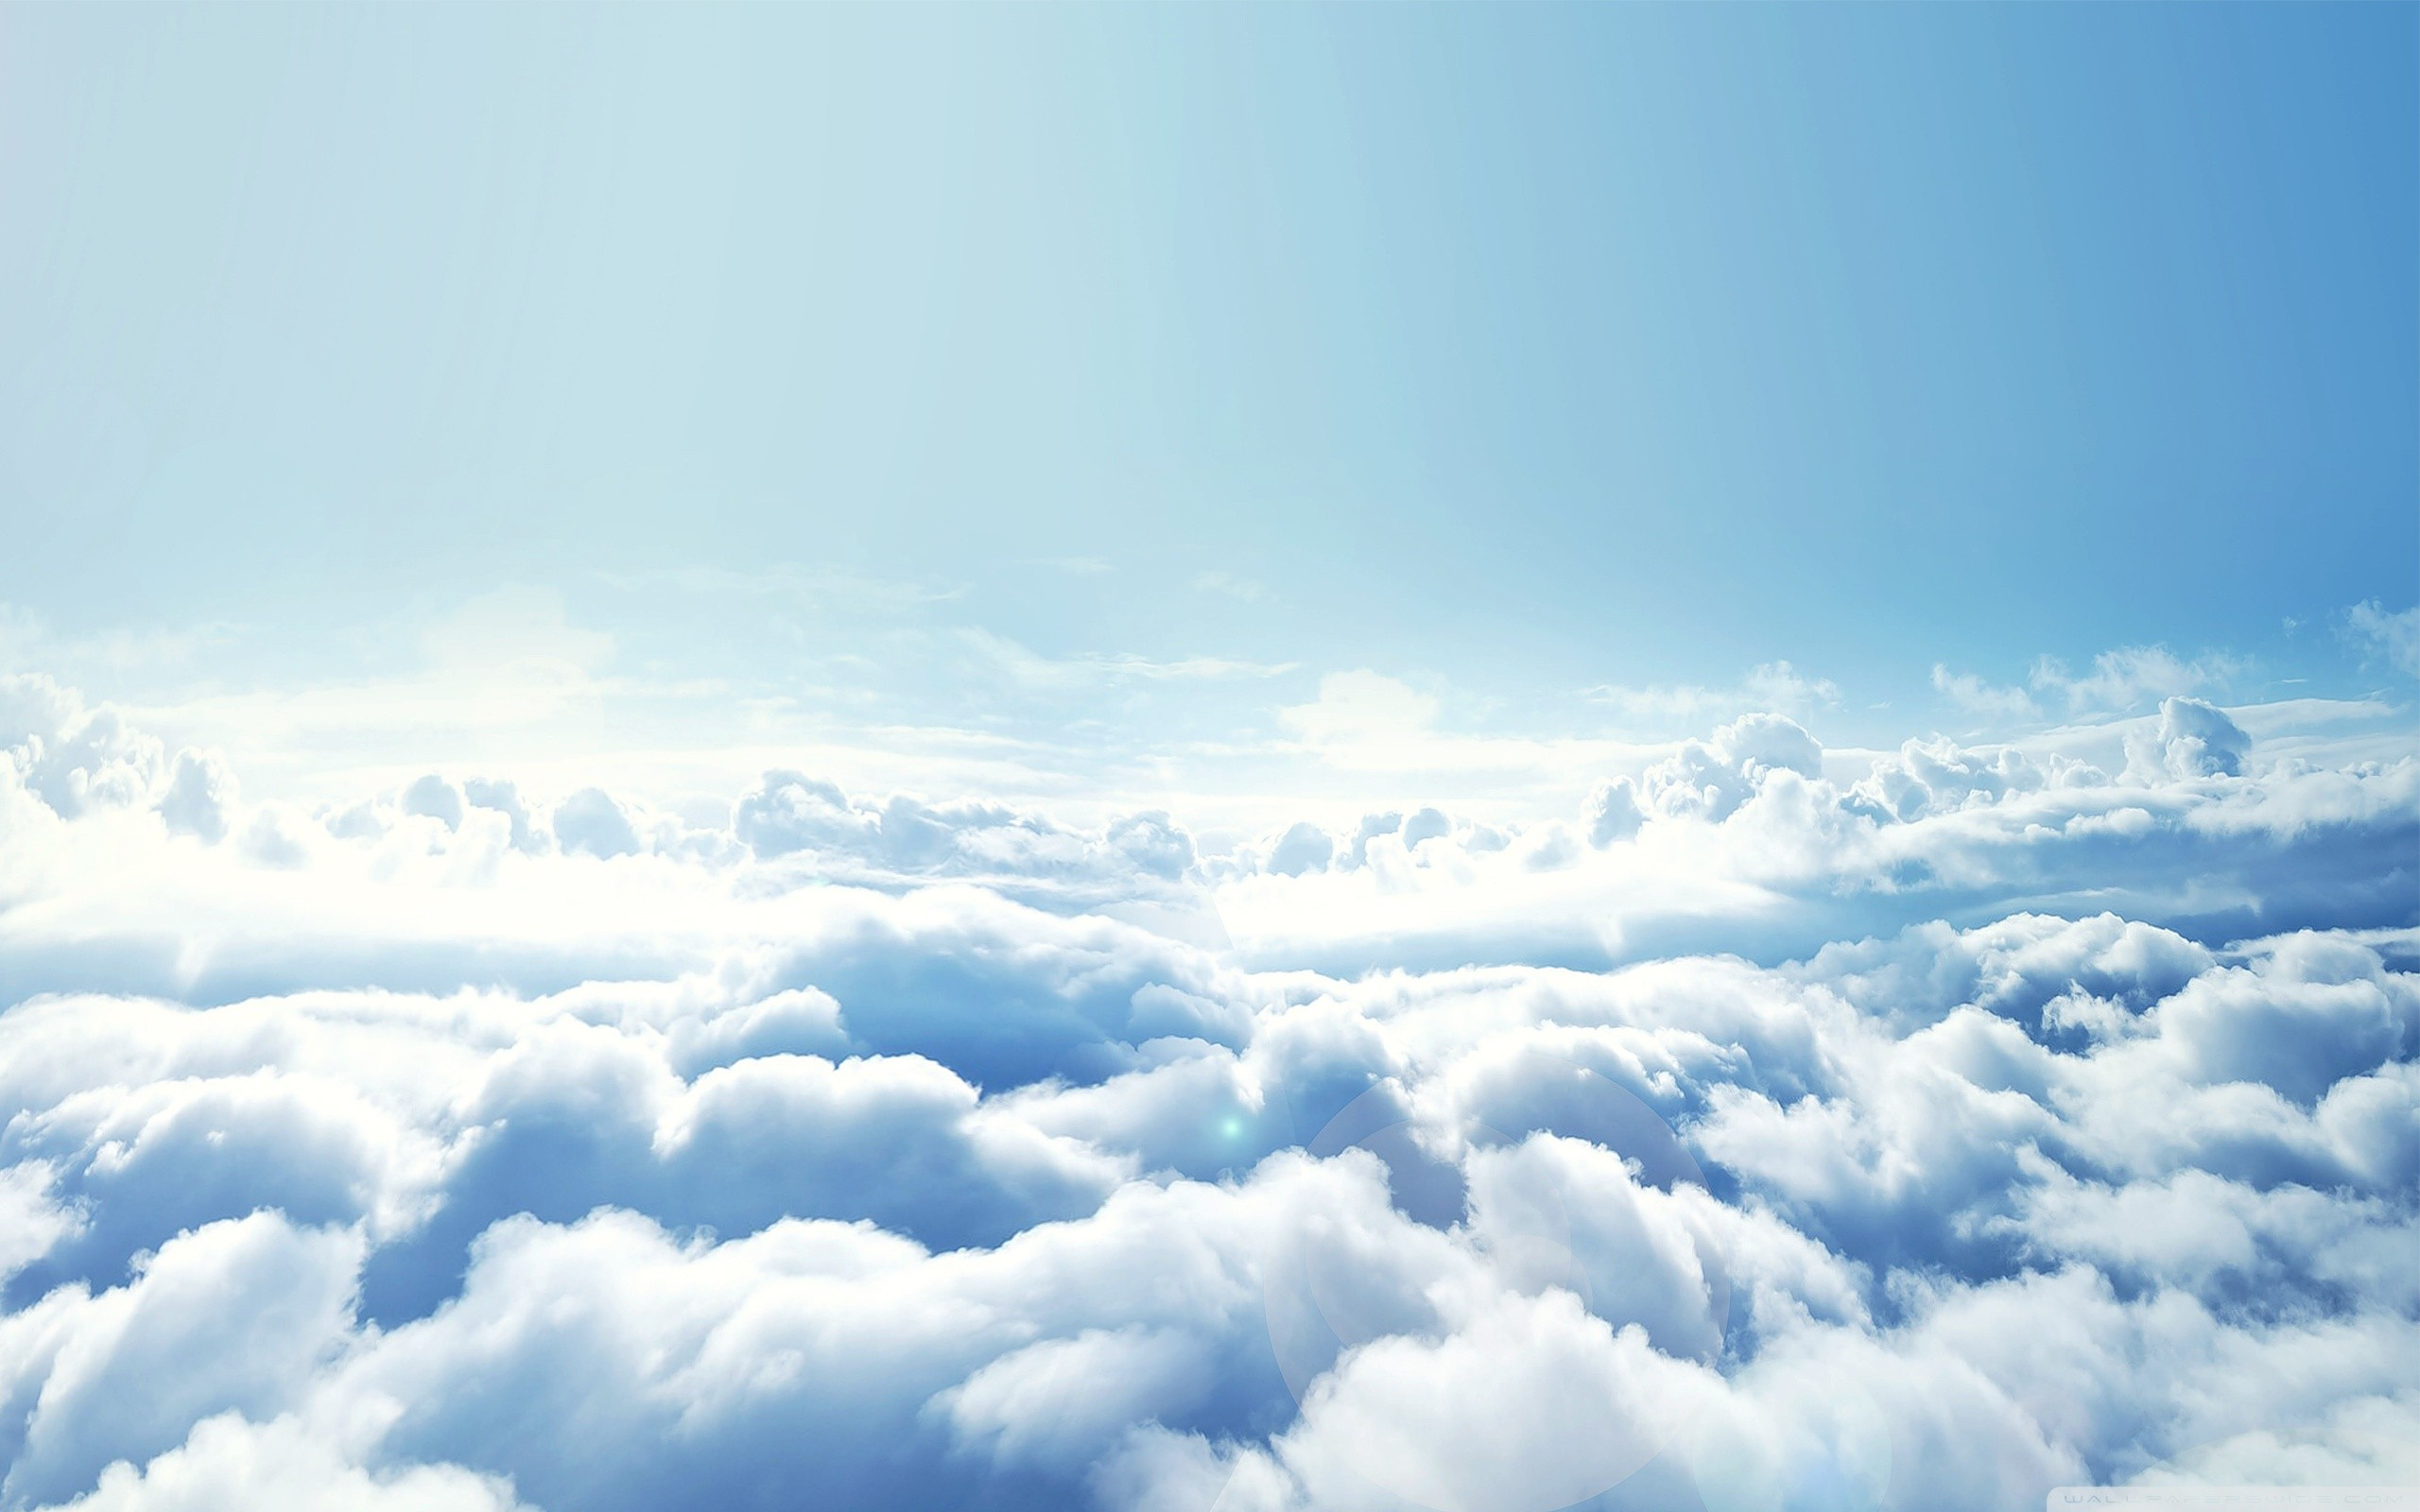 Clouds wallpaper ·① Download free stunning full HD ...